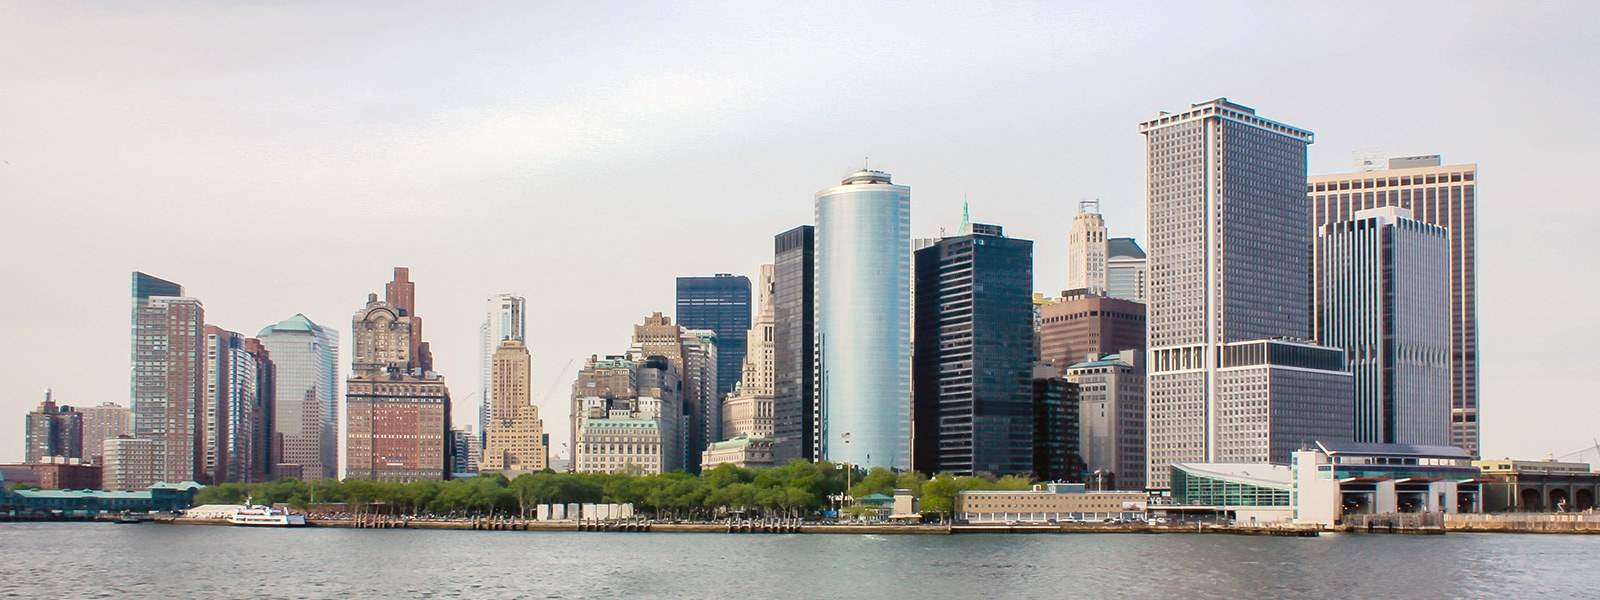 Budget travel tips and top things to do in new york city for Things to do in nyc manhattan